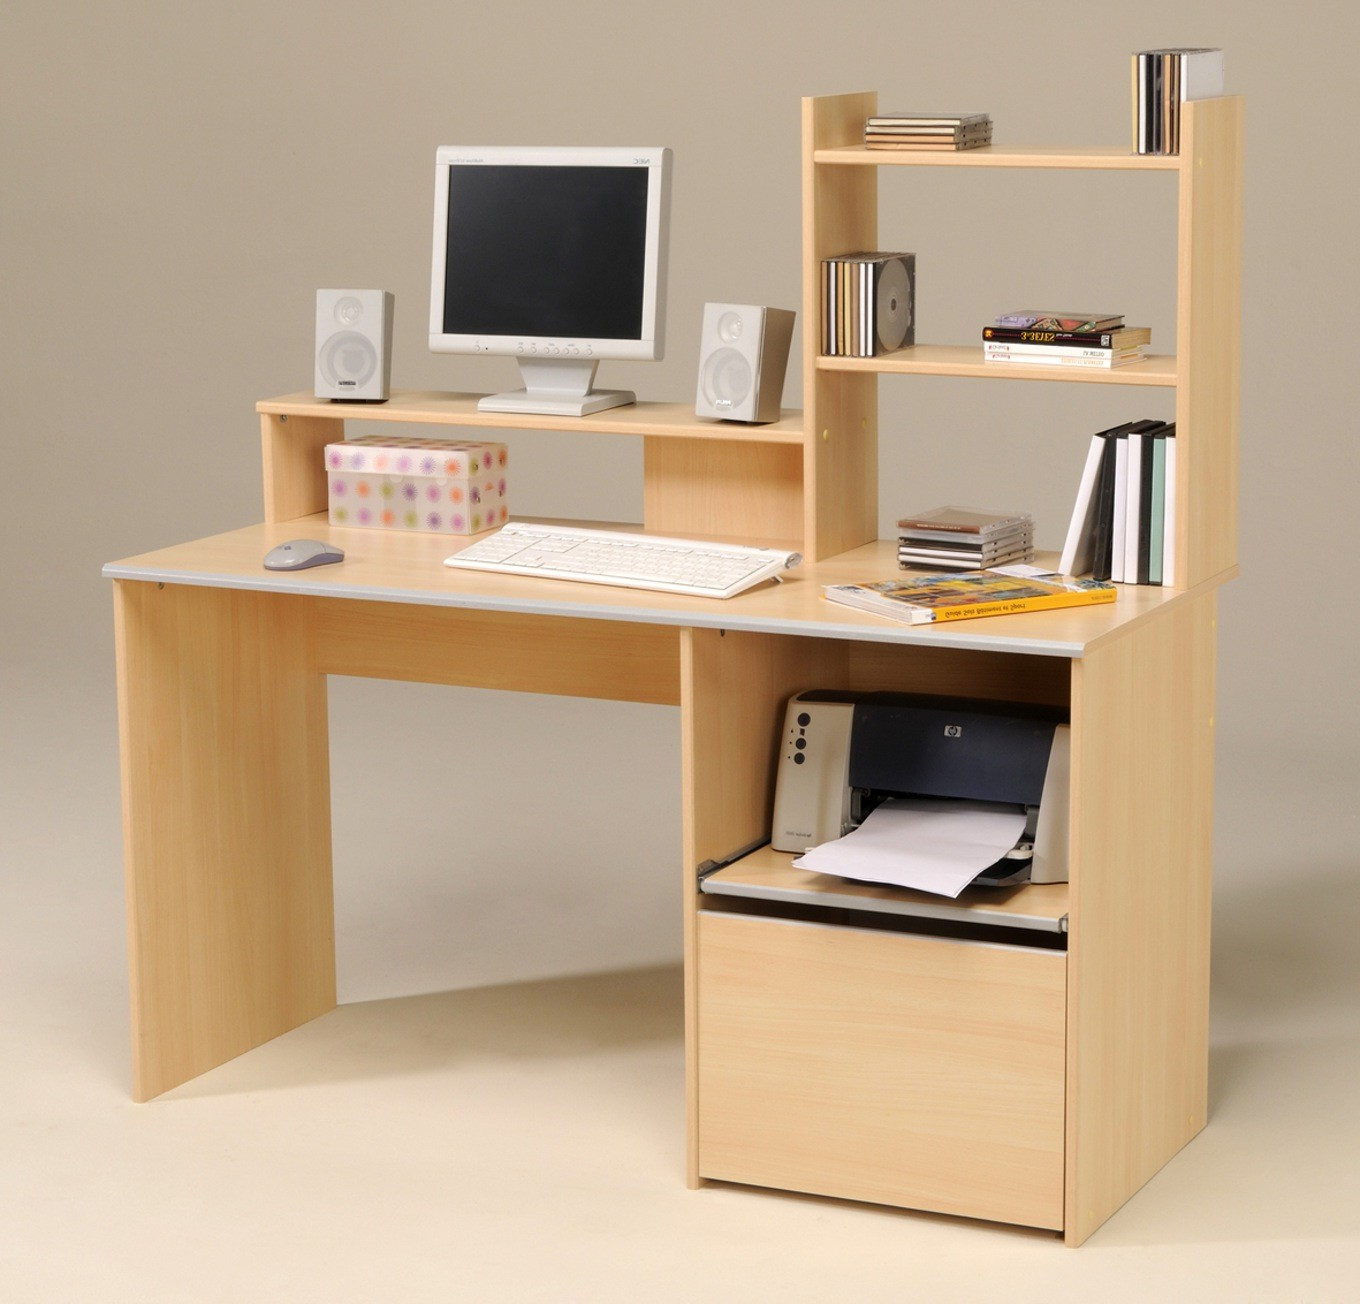 Bureau pour ordinateur fixe but bureau id es de for Bureau ordinateur but